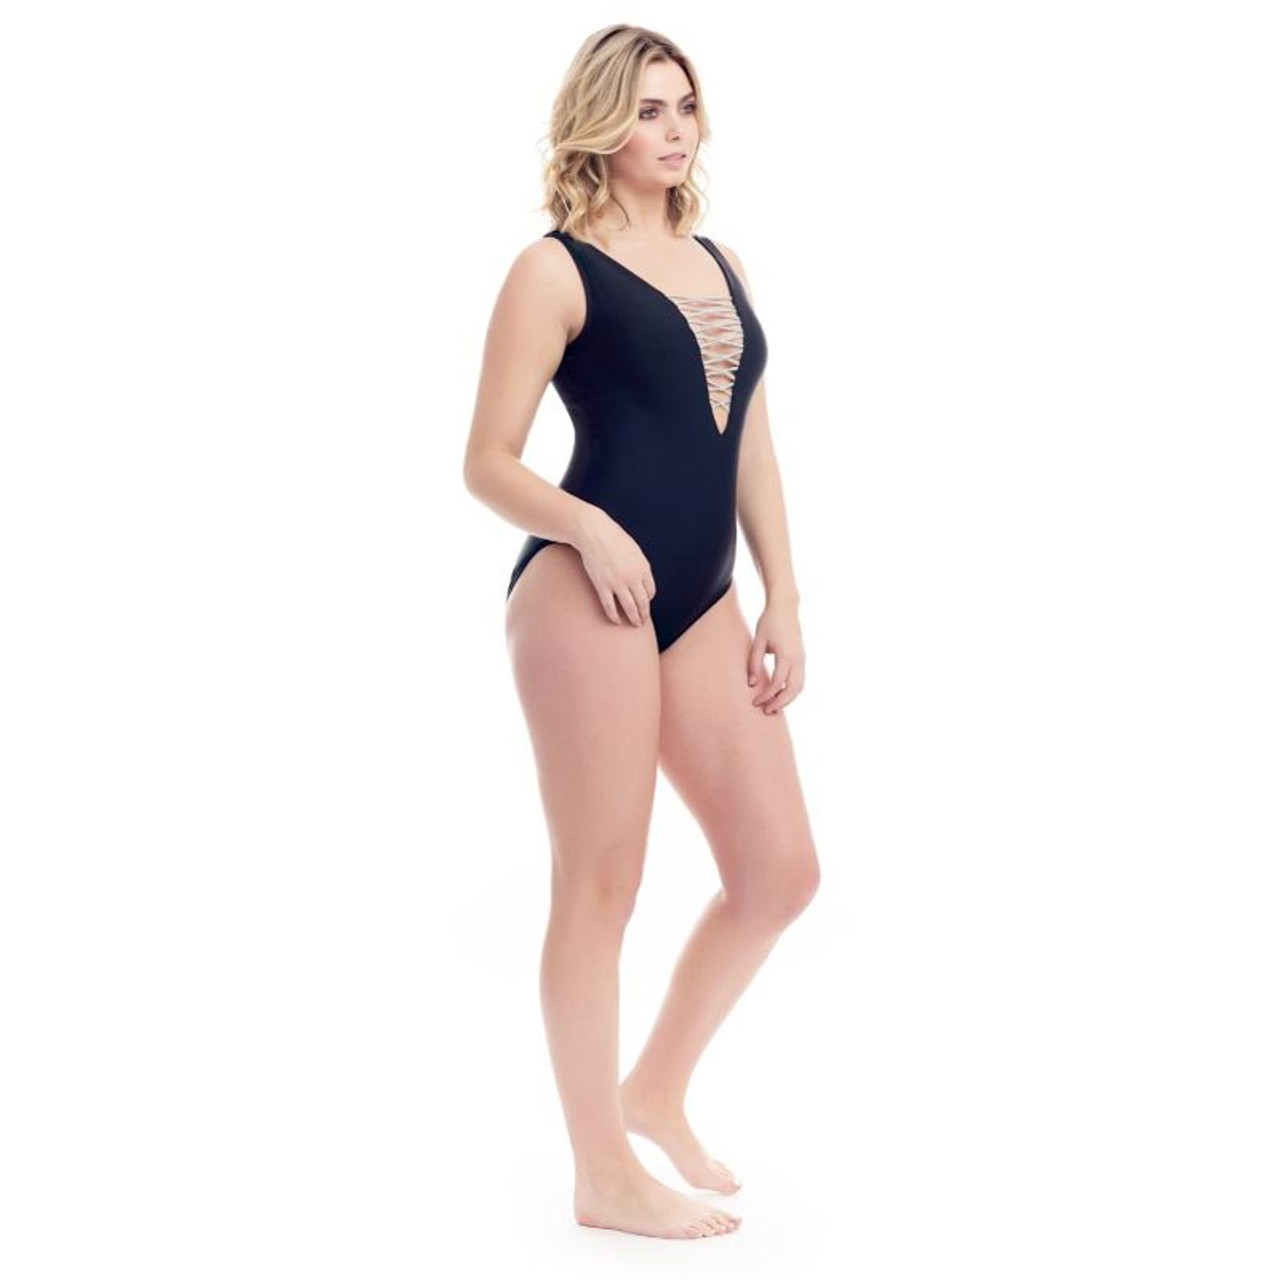 Cover Girl Women's Lace Up One-Piece Swimsuit